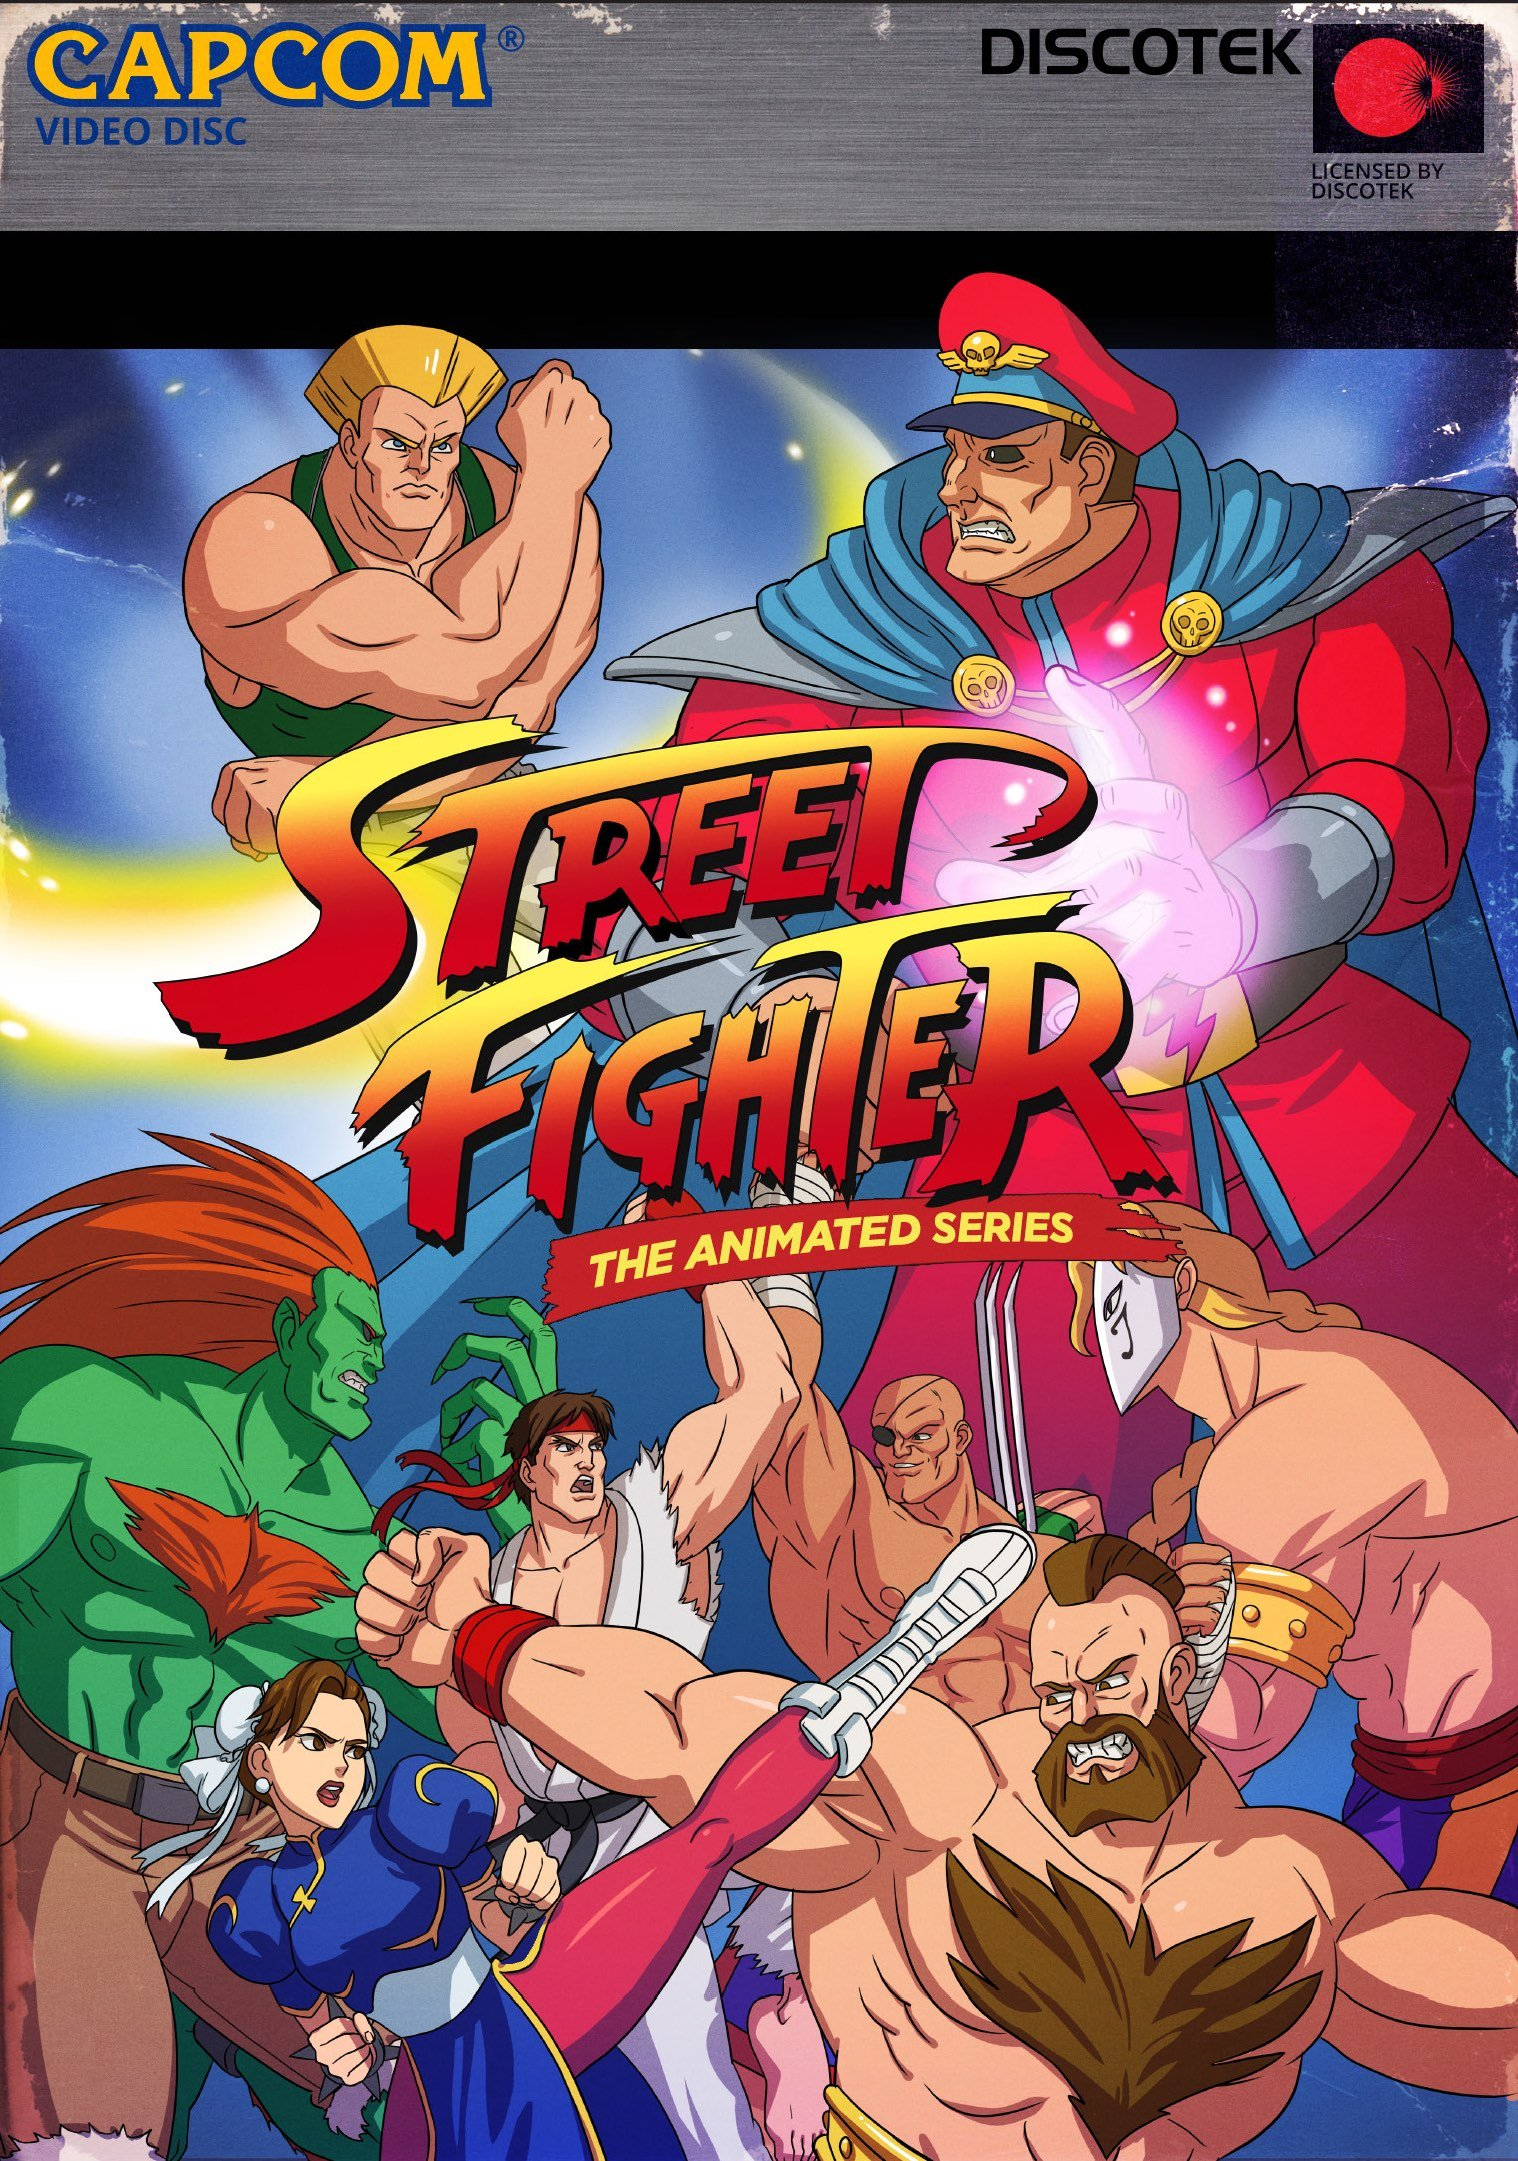 DVD : Scott McNeil - Street Fighter Ii: The Animated Series (4PC)